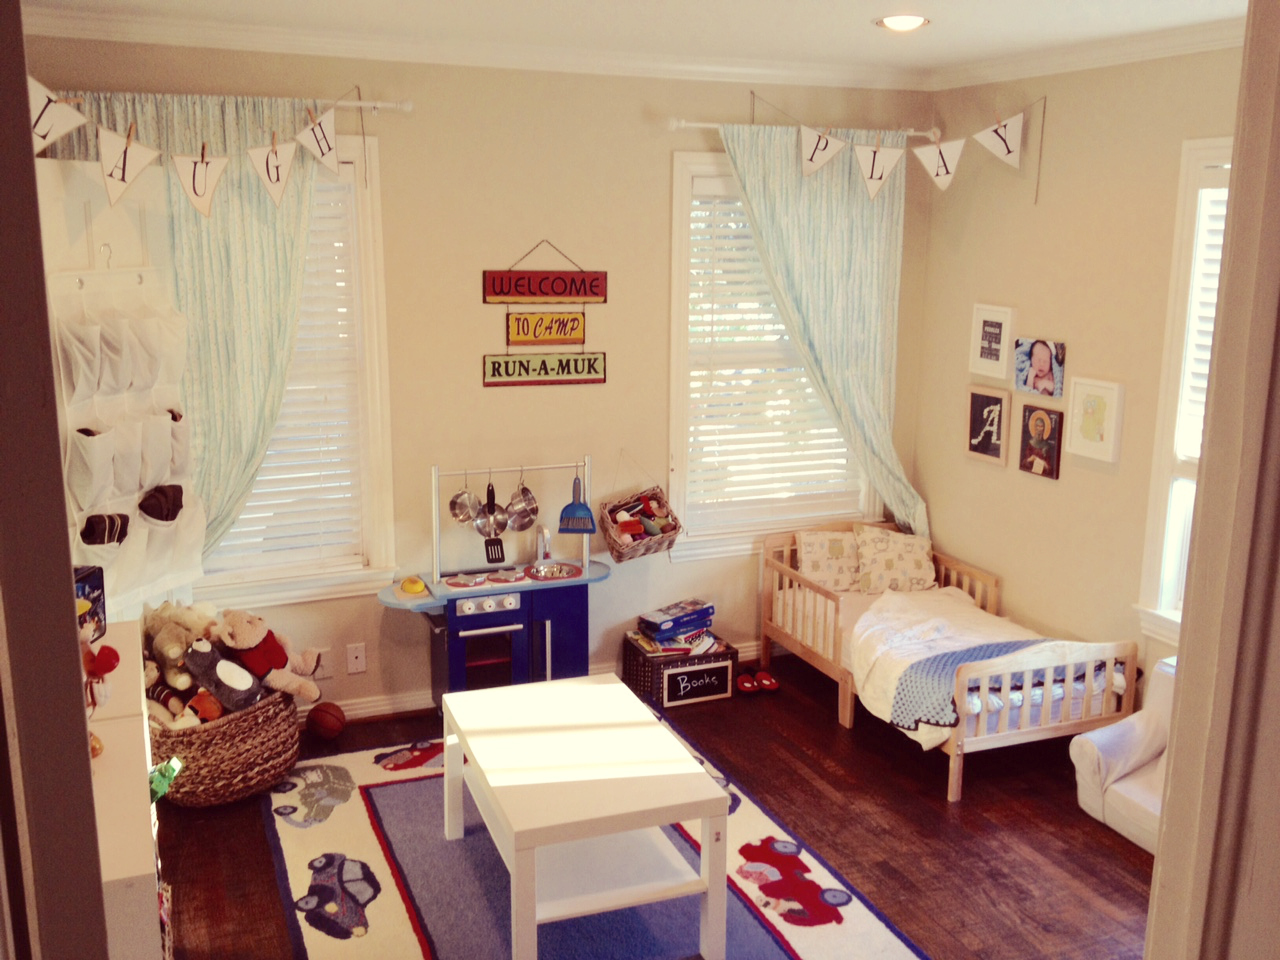 Boys Room with toddler beds